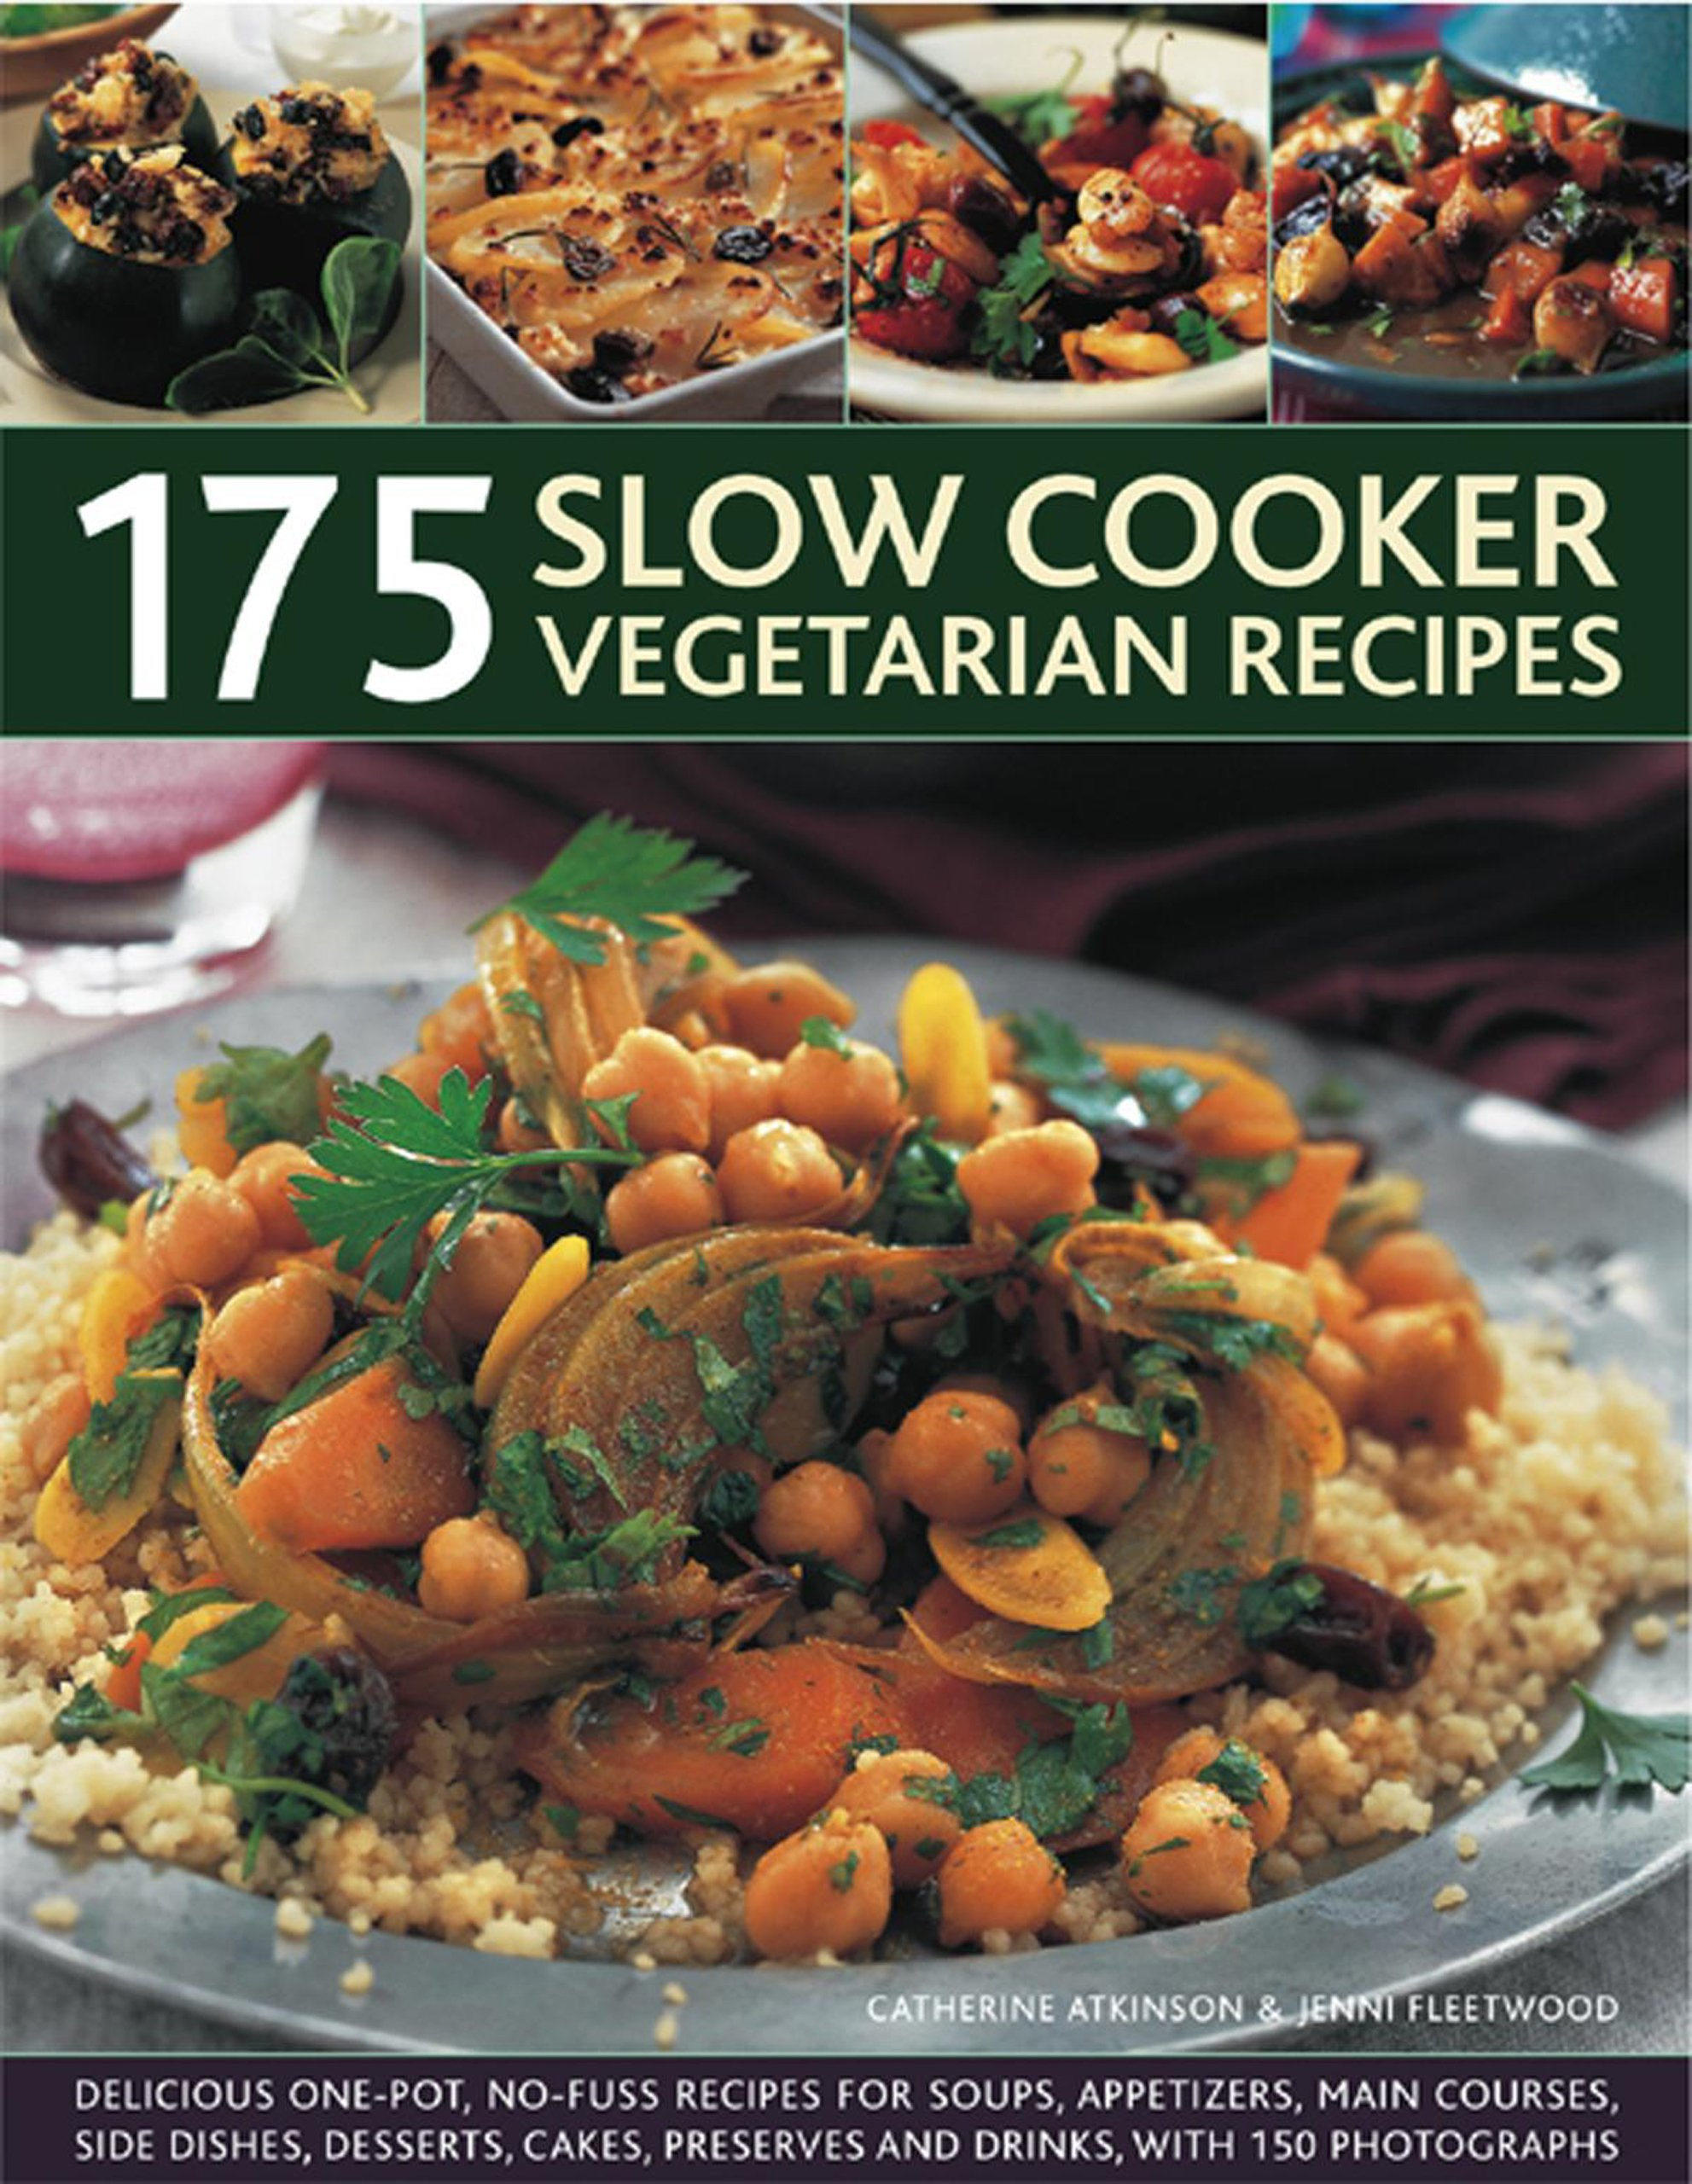 175 Slow Cooker Vegetarian Recipes: Delicious One-Pot, No-Fuss Recipes For Soups, Appetizers, Main Courses, Side Dishes, Desserts, Cakes, Preserves And Drinks, With 150 Photographs. pdf